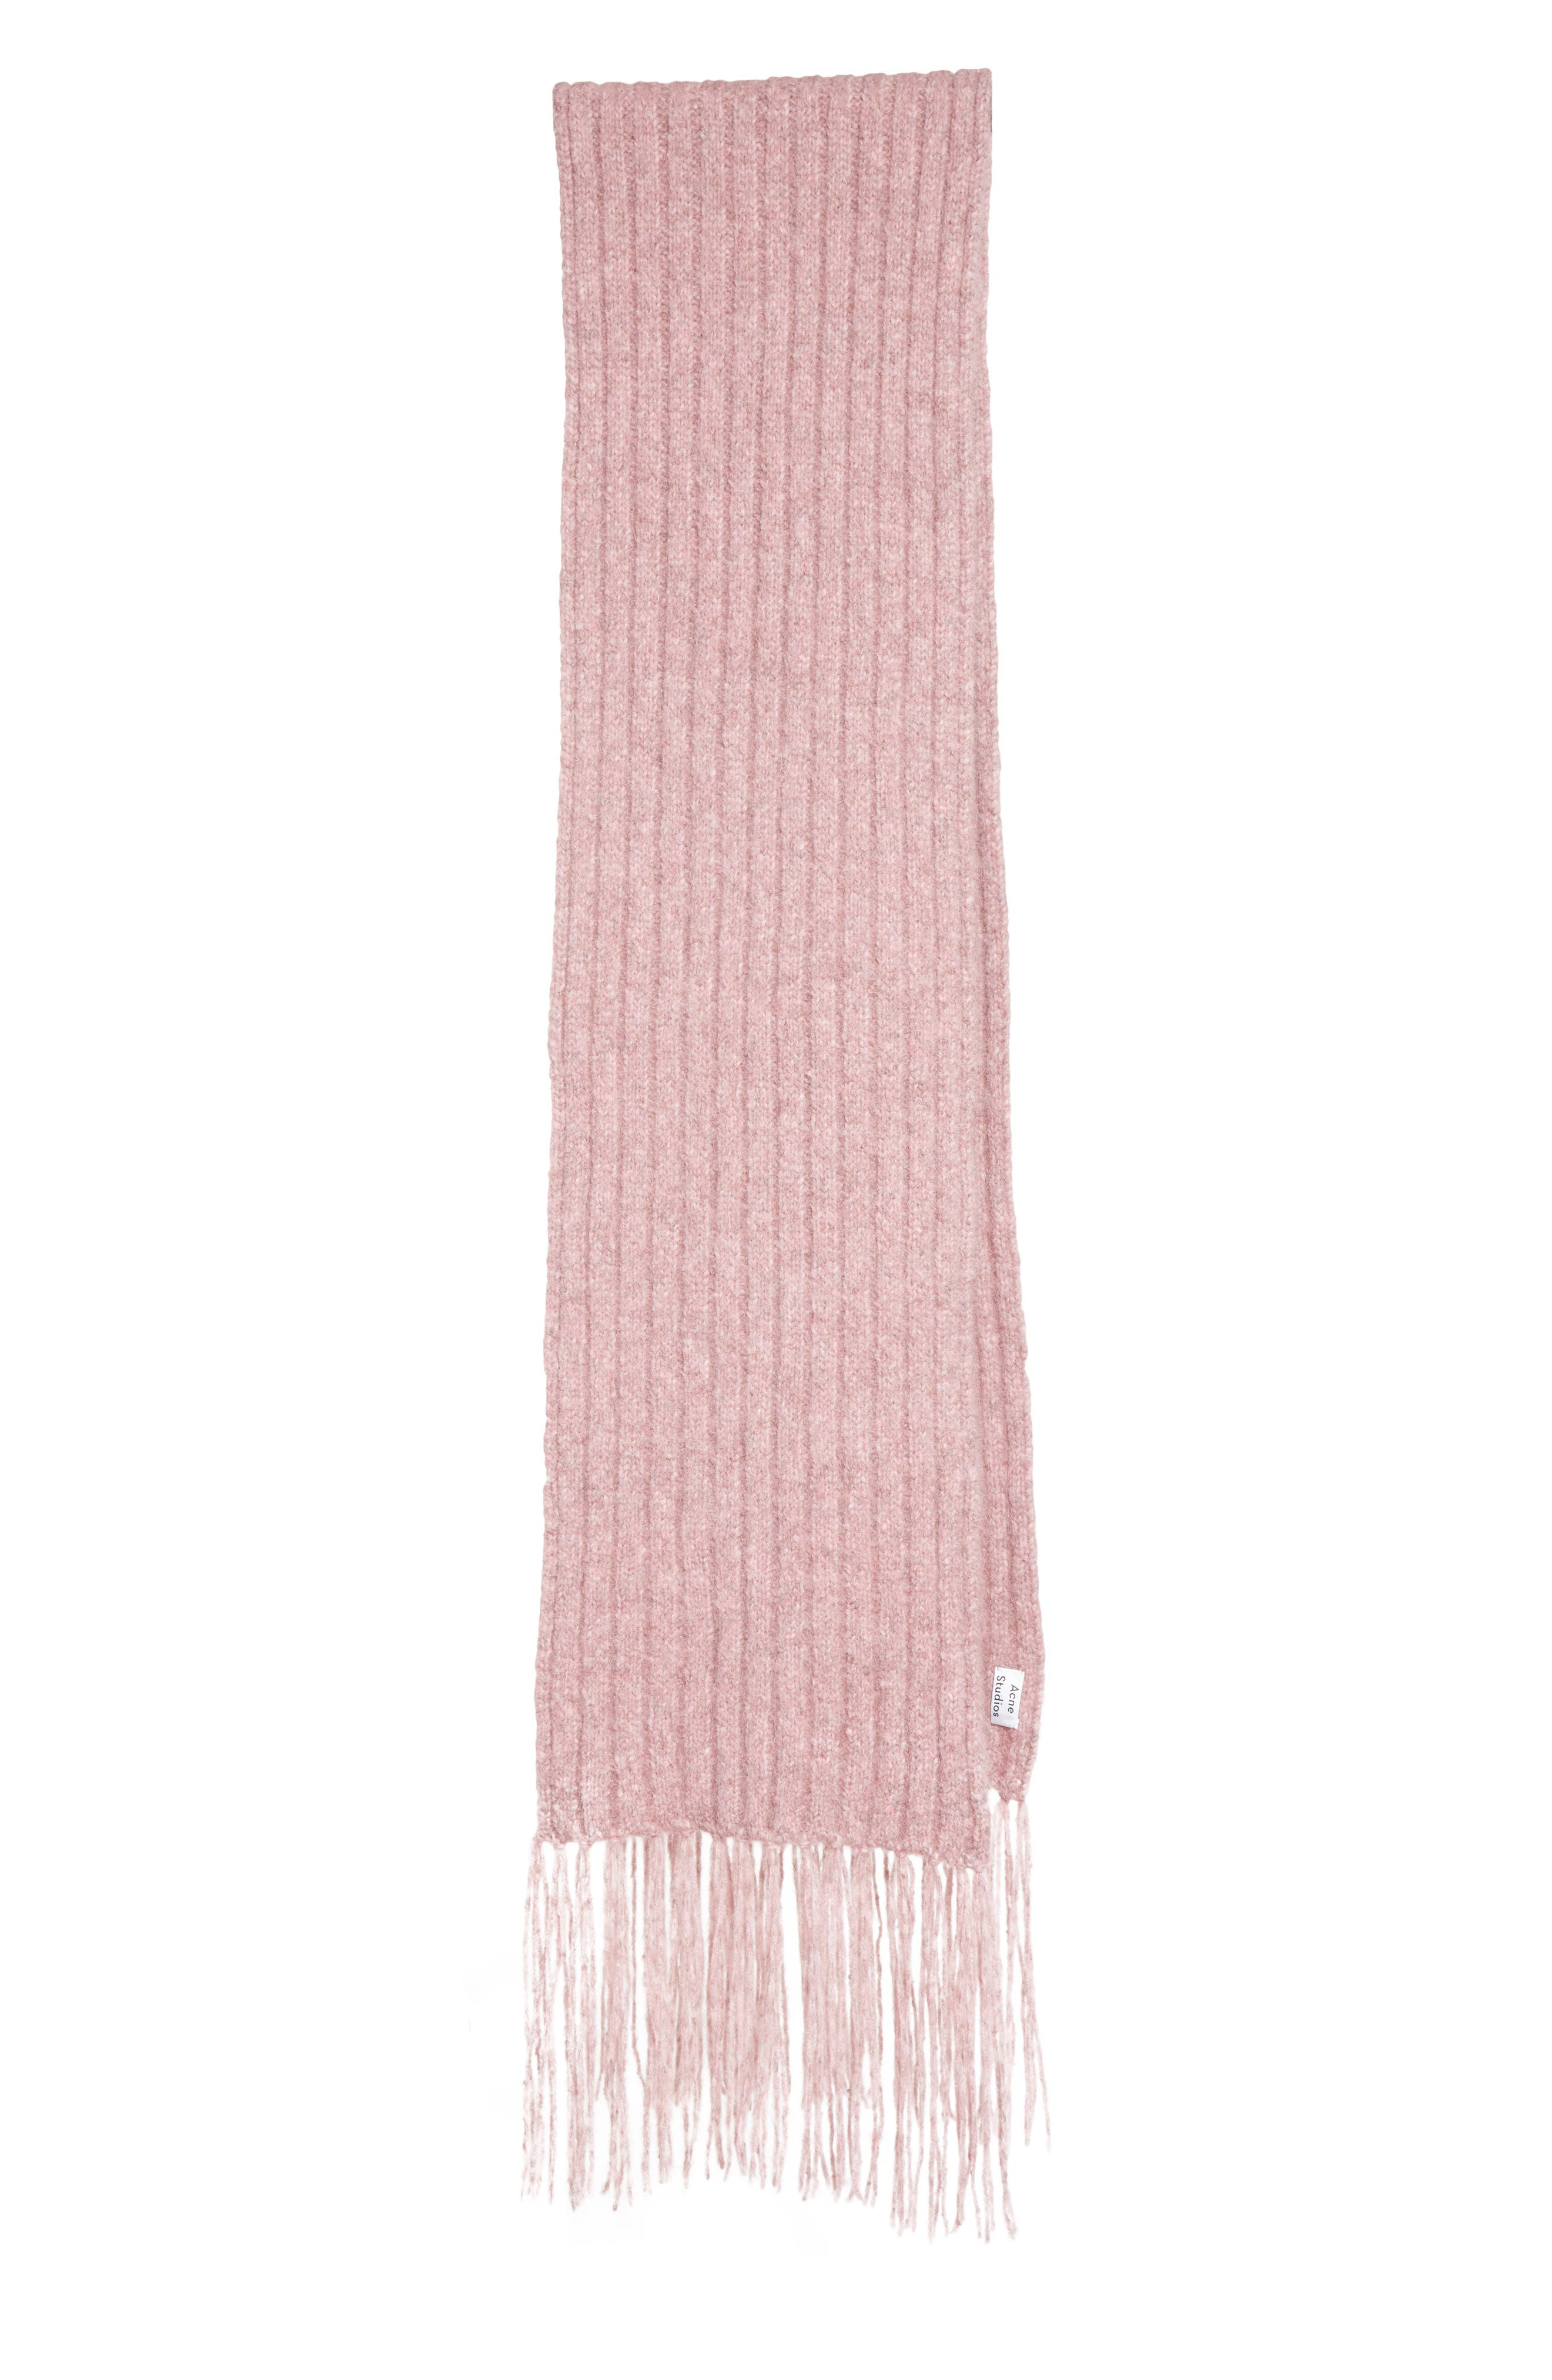 Fringed Alpaca Blend Scarf,                         Main,                         color, Dusty Pink